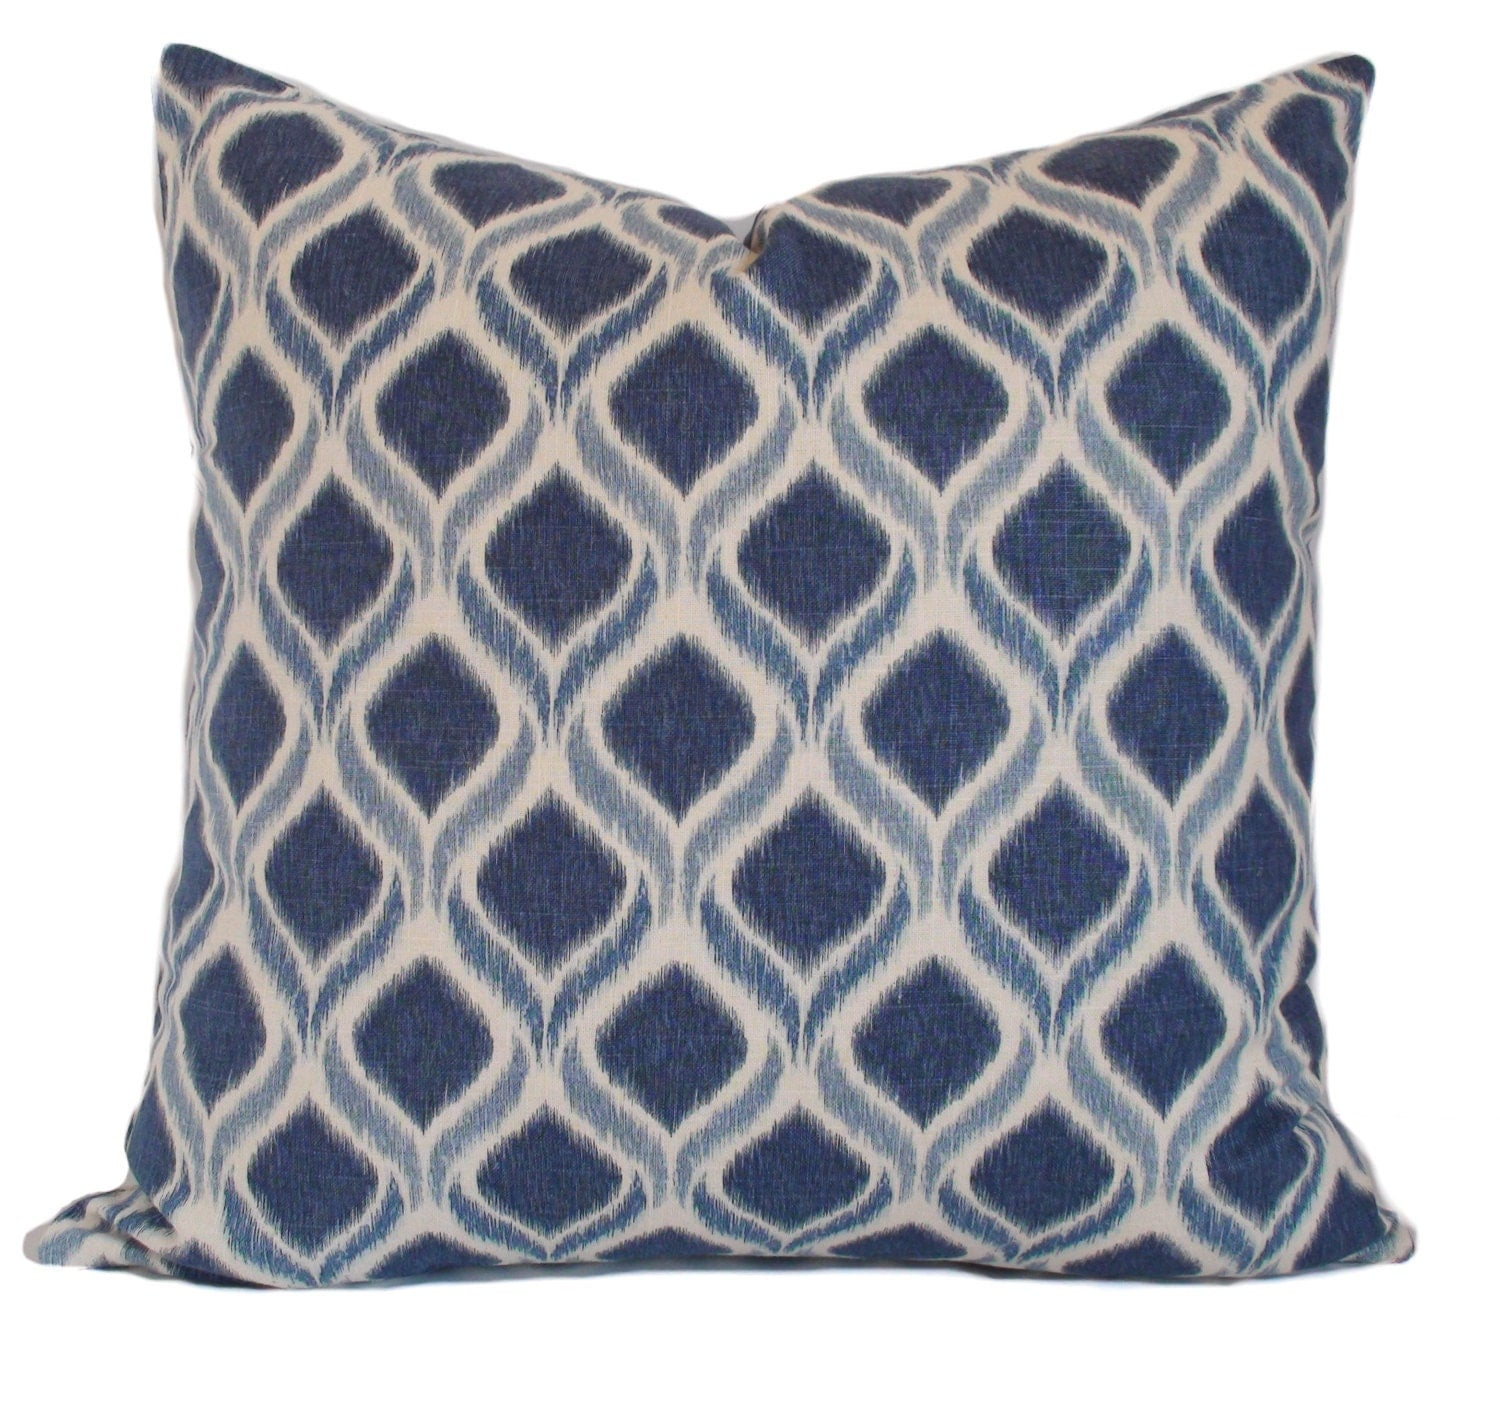 22x22 Throw Pillow Covers : Blue pillow cover 22x22 Blue throw pillows Toss pillow